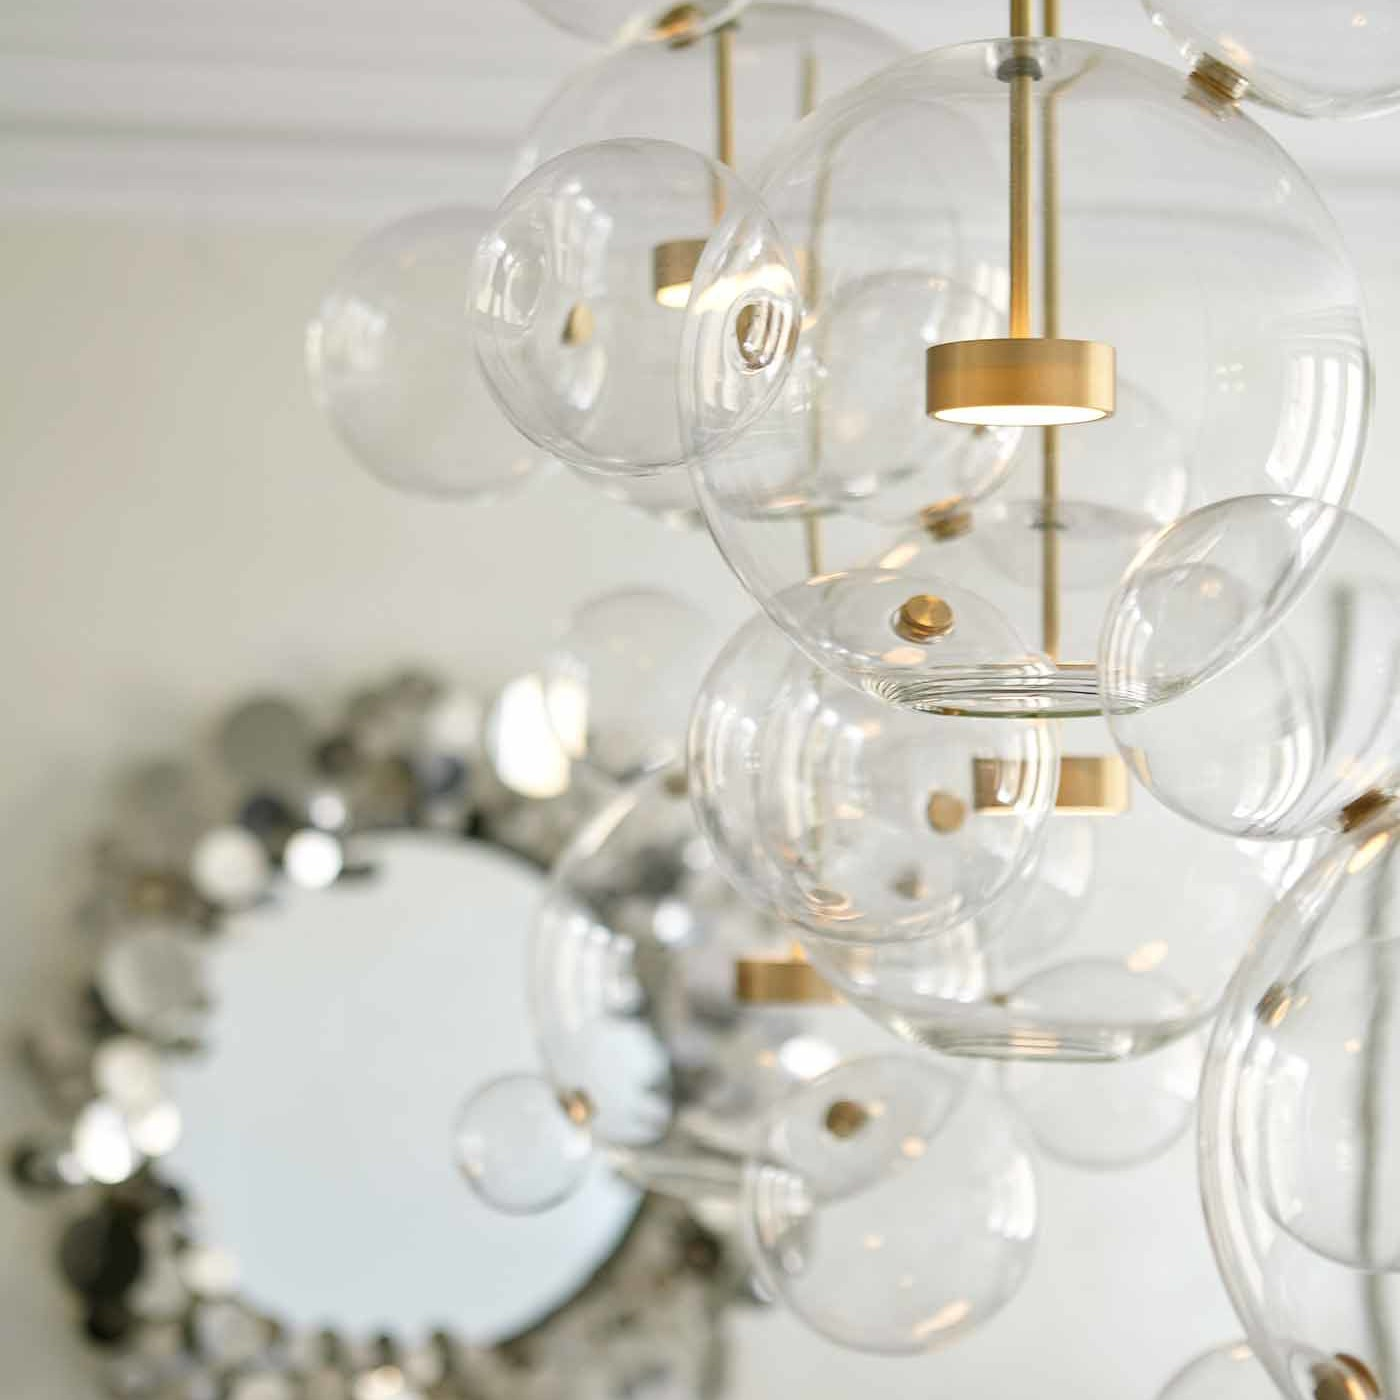 Custom made multi-bubble chandelier in a chic NYC dining room designed by Darci Hether New York